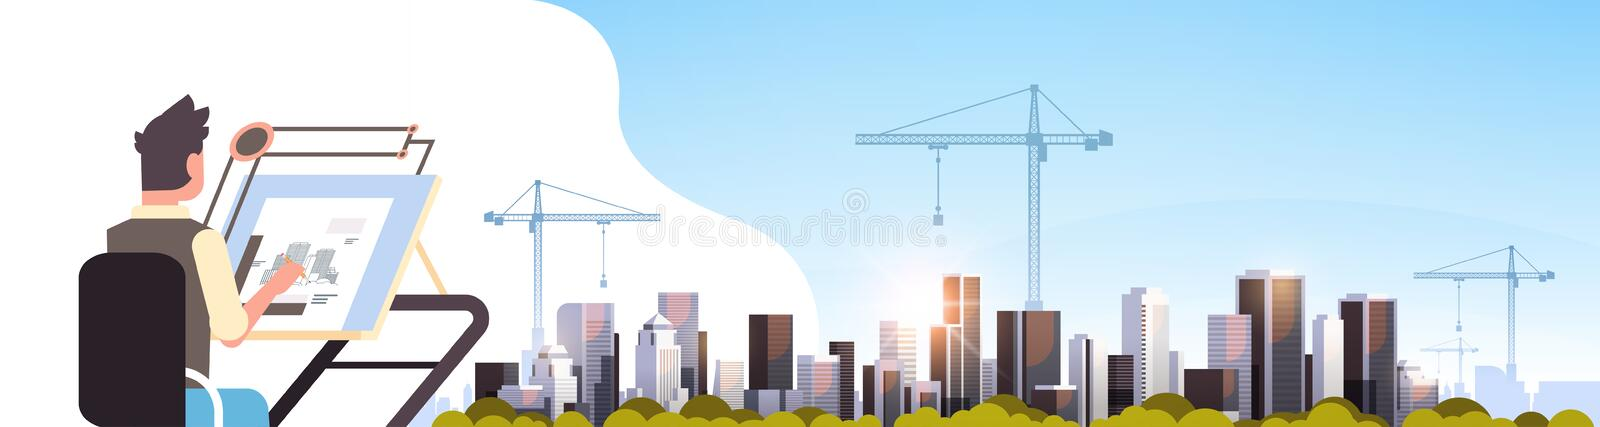 Architect drawing blueprint urban building plan on adjustable board over city construction site tower cranes residential. Buildings cityscape sunset skyline royalty free illustration